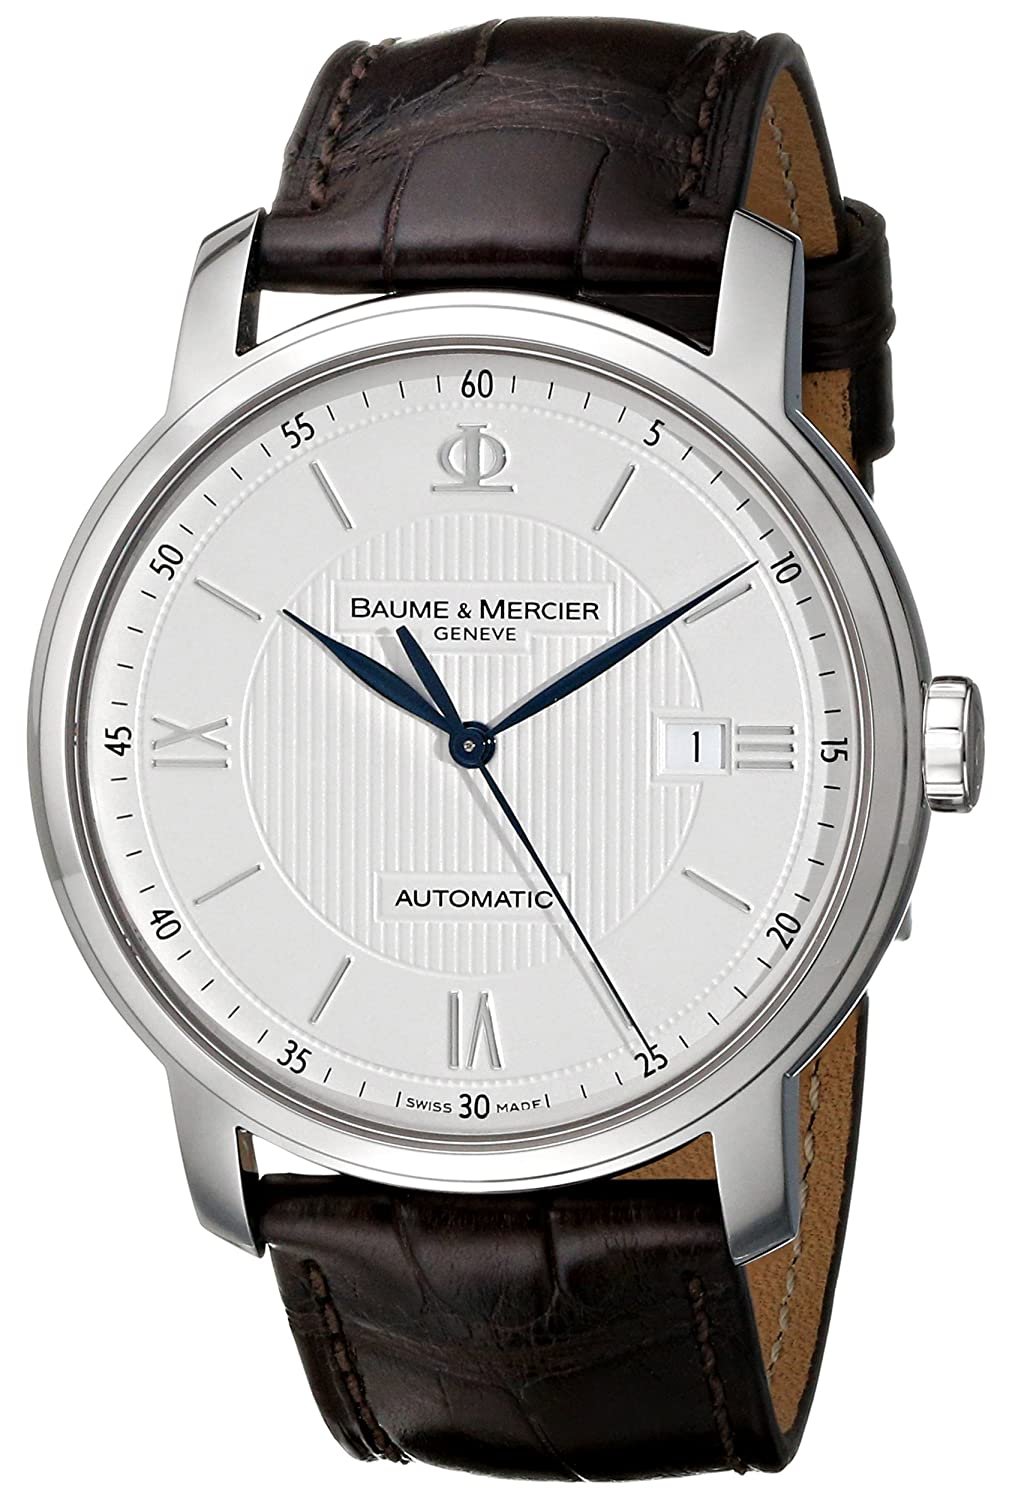 Baume et Mercier Classima Executives 8731